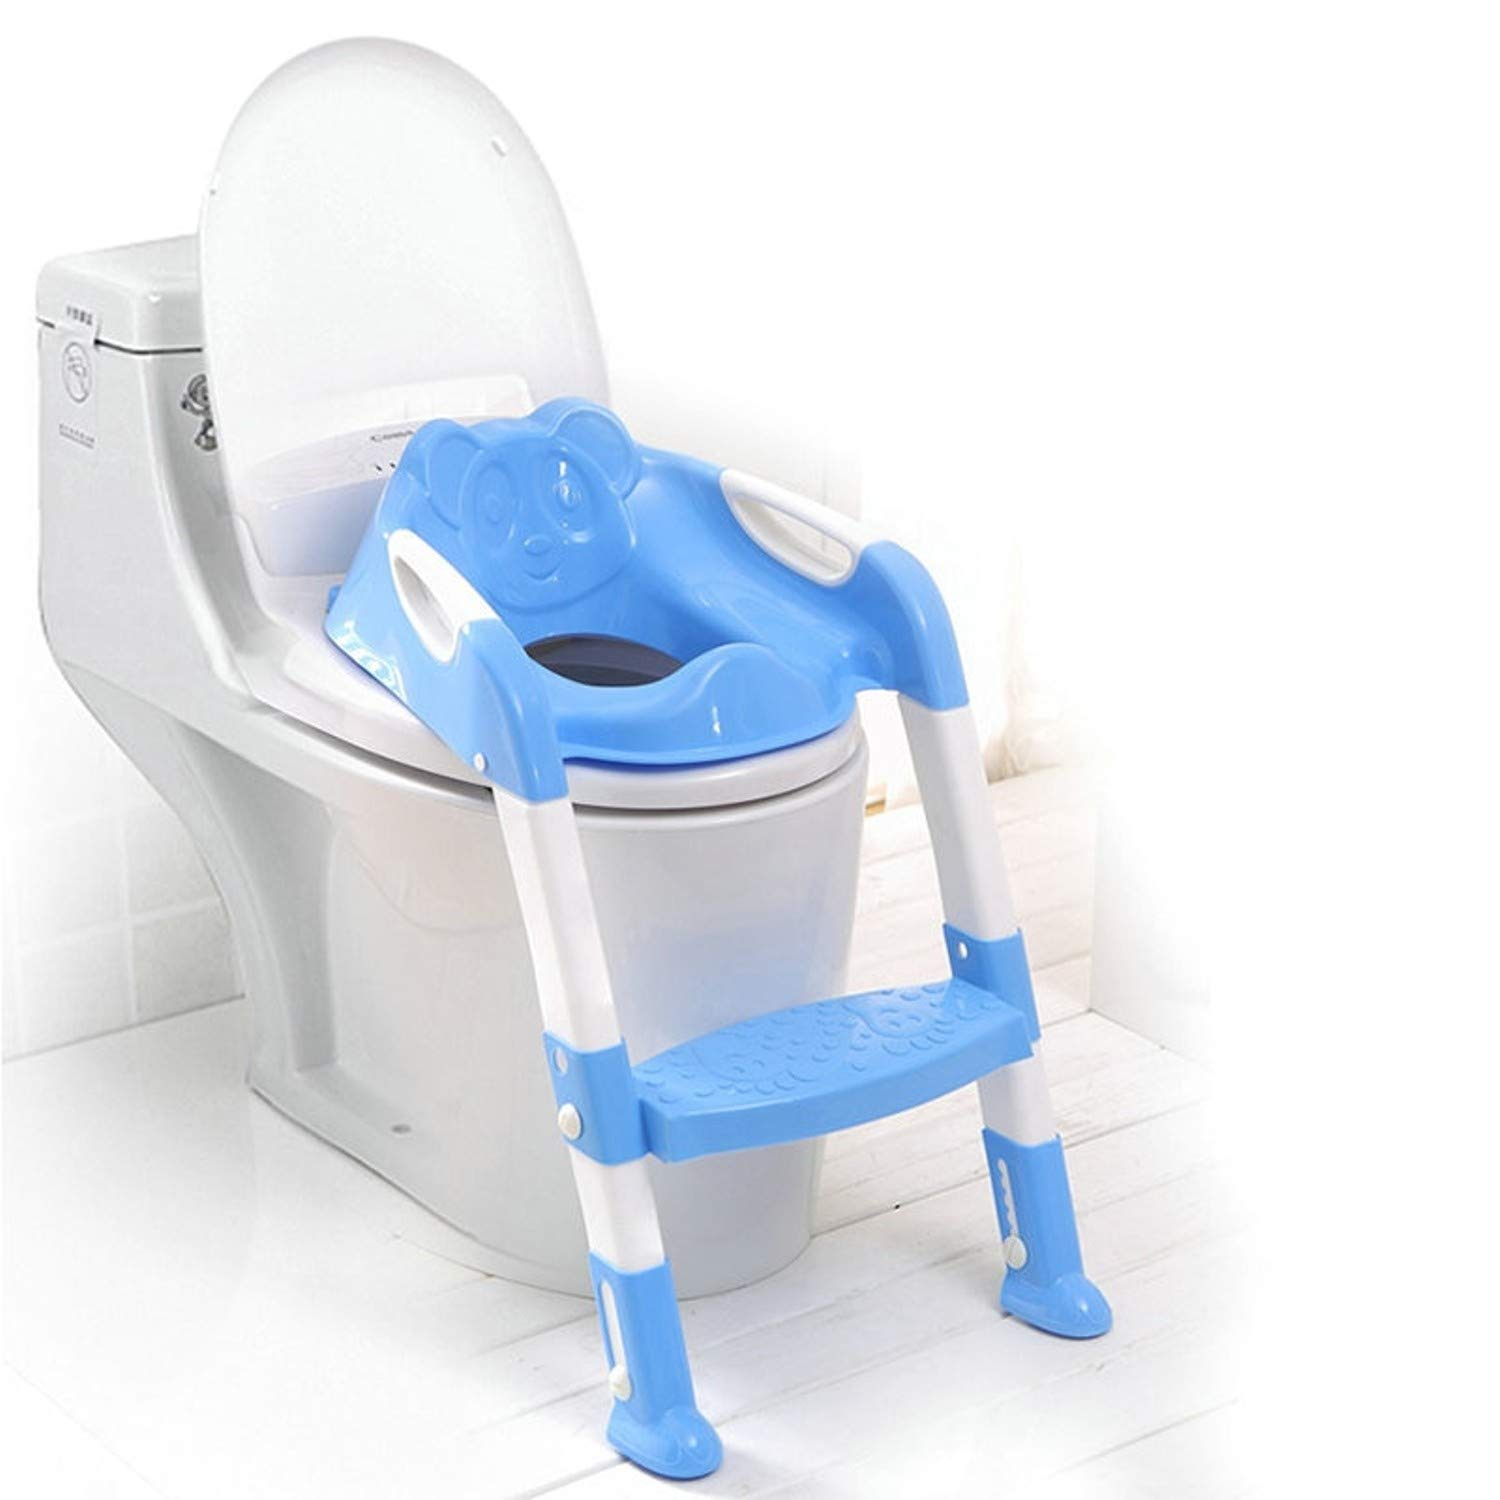 Magnificent Amazon Com Baby Potty Training Seat Childrens Potty Baby Spiritservingveterans Wood Chair Design Ideas Spiritservingveteransorg